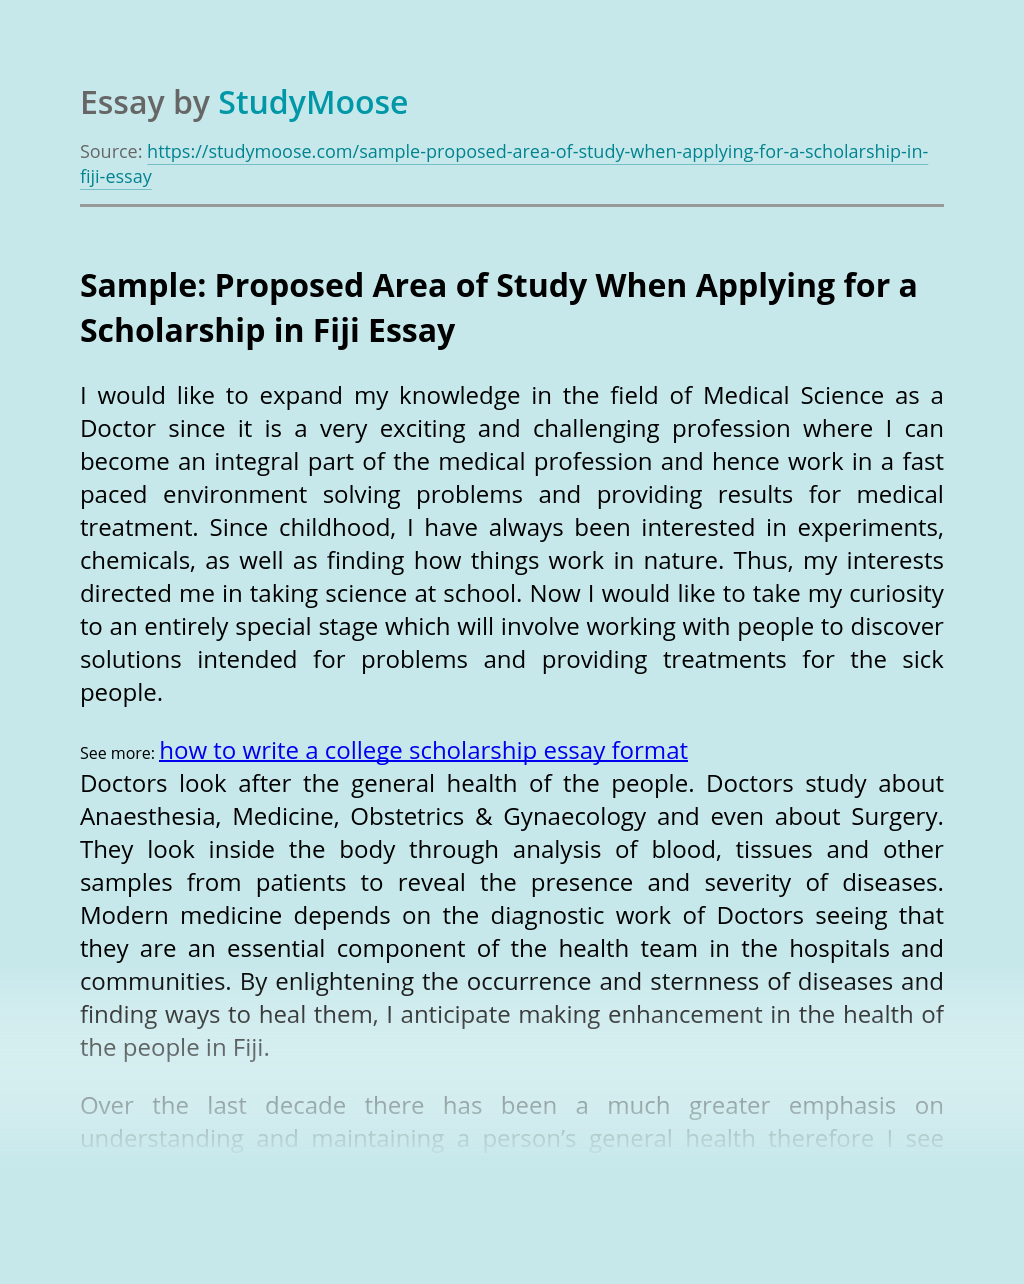 Sample: Proposed Area of Study When Applying for a Scholarship in Fiji